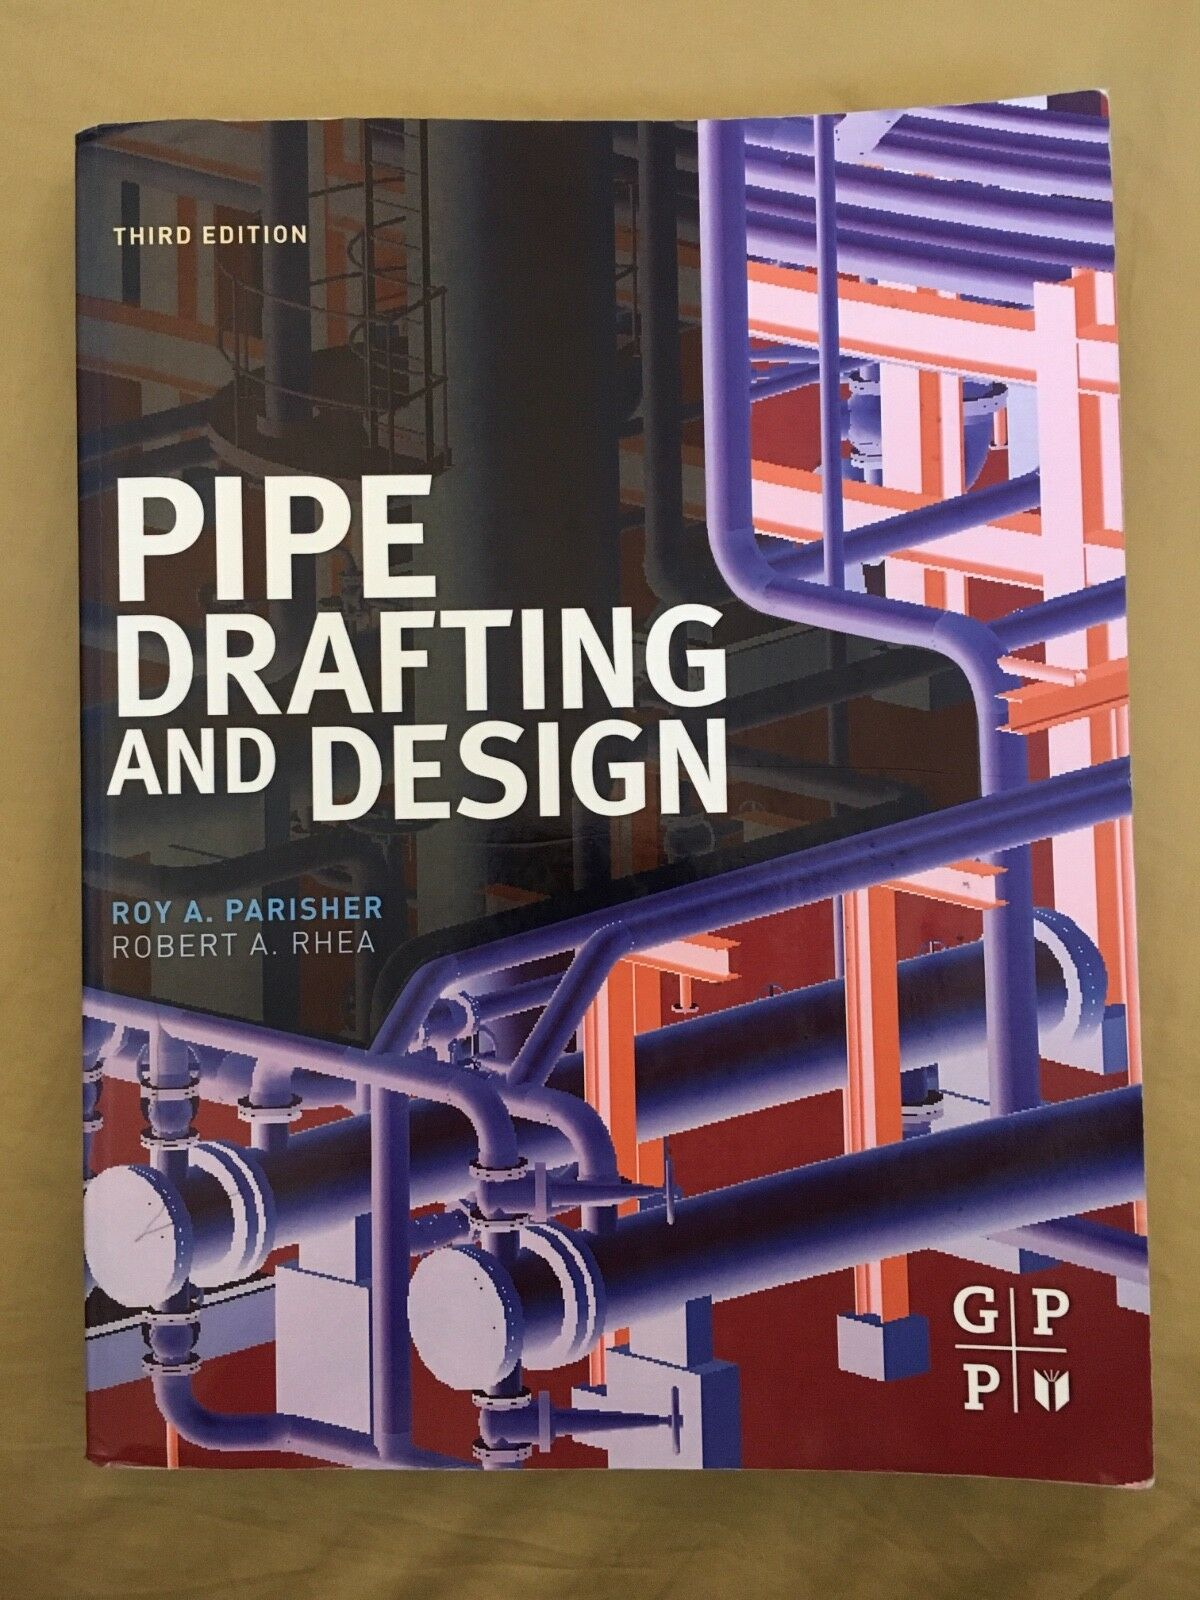 Pipe Drafting And Design By Roy A Parisher Robert Rhea 2011 Piping Layout Books Paperback Ebay